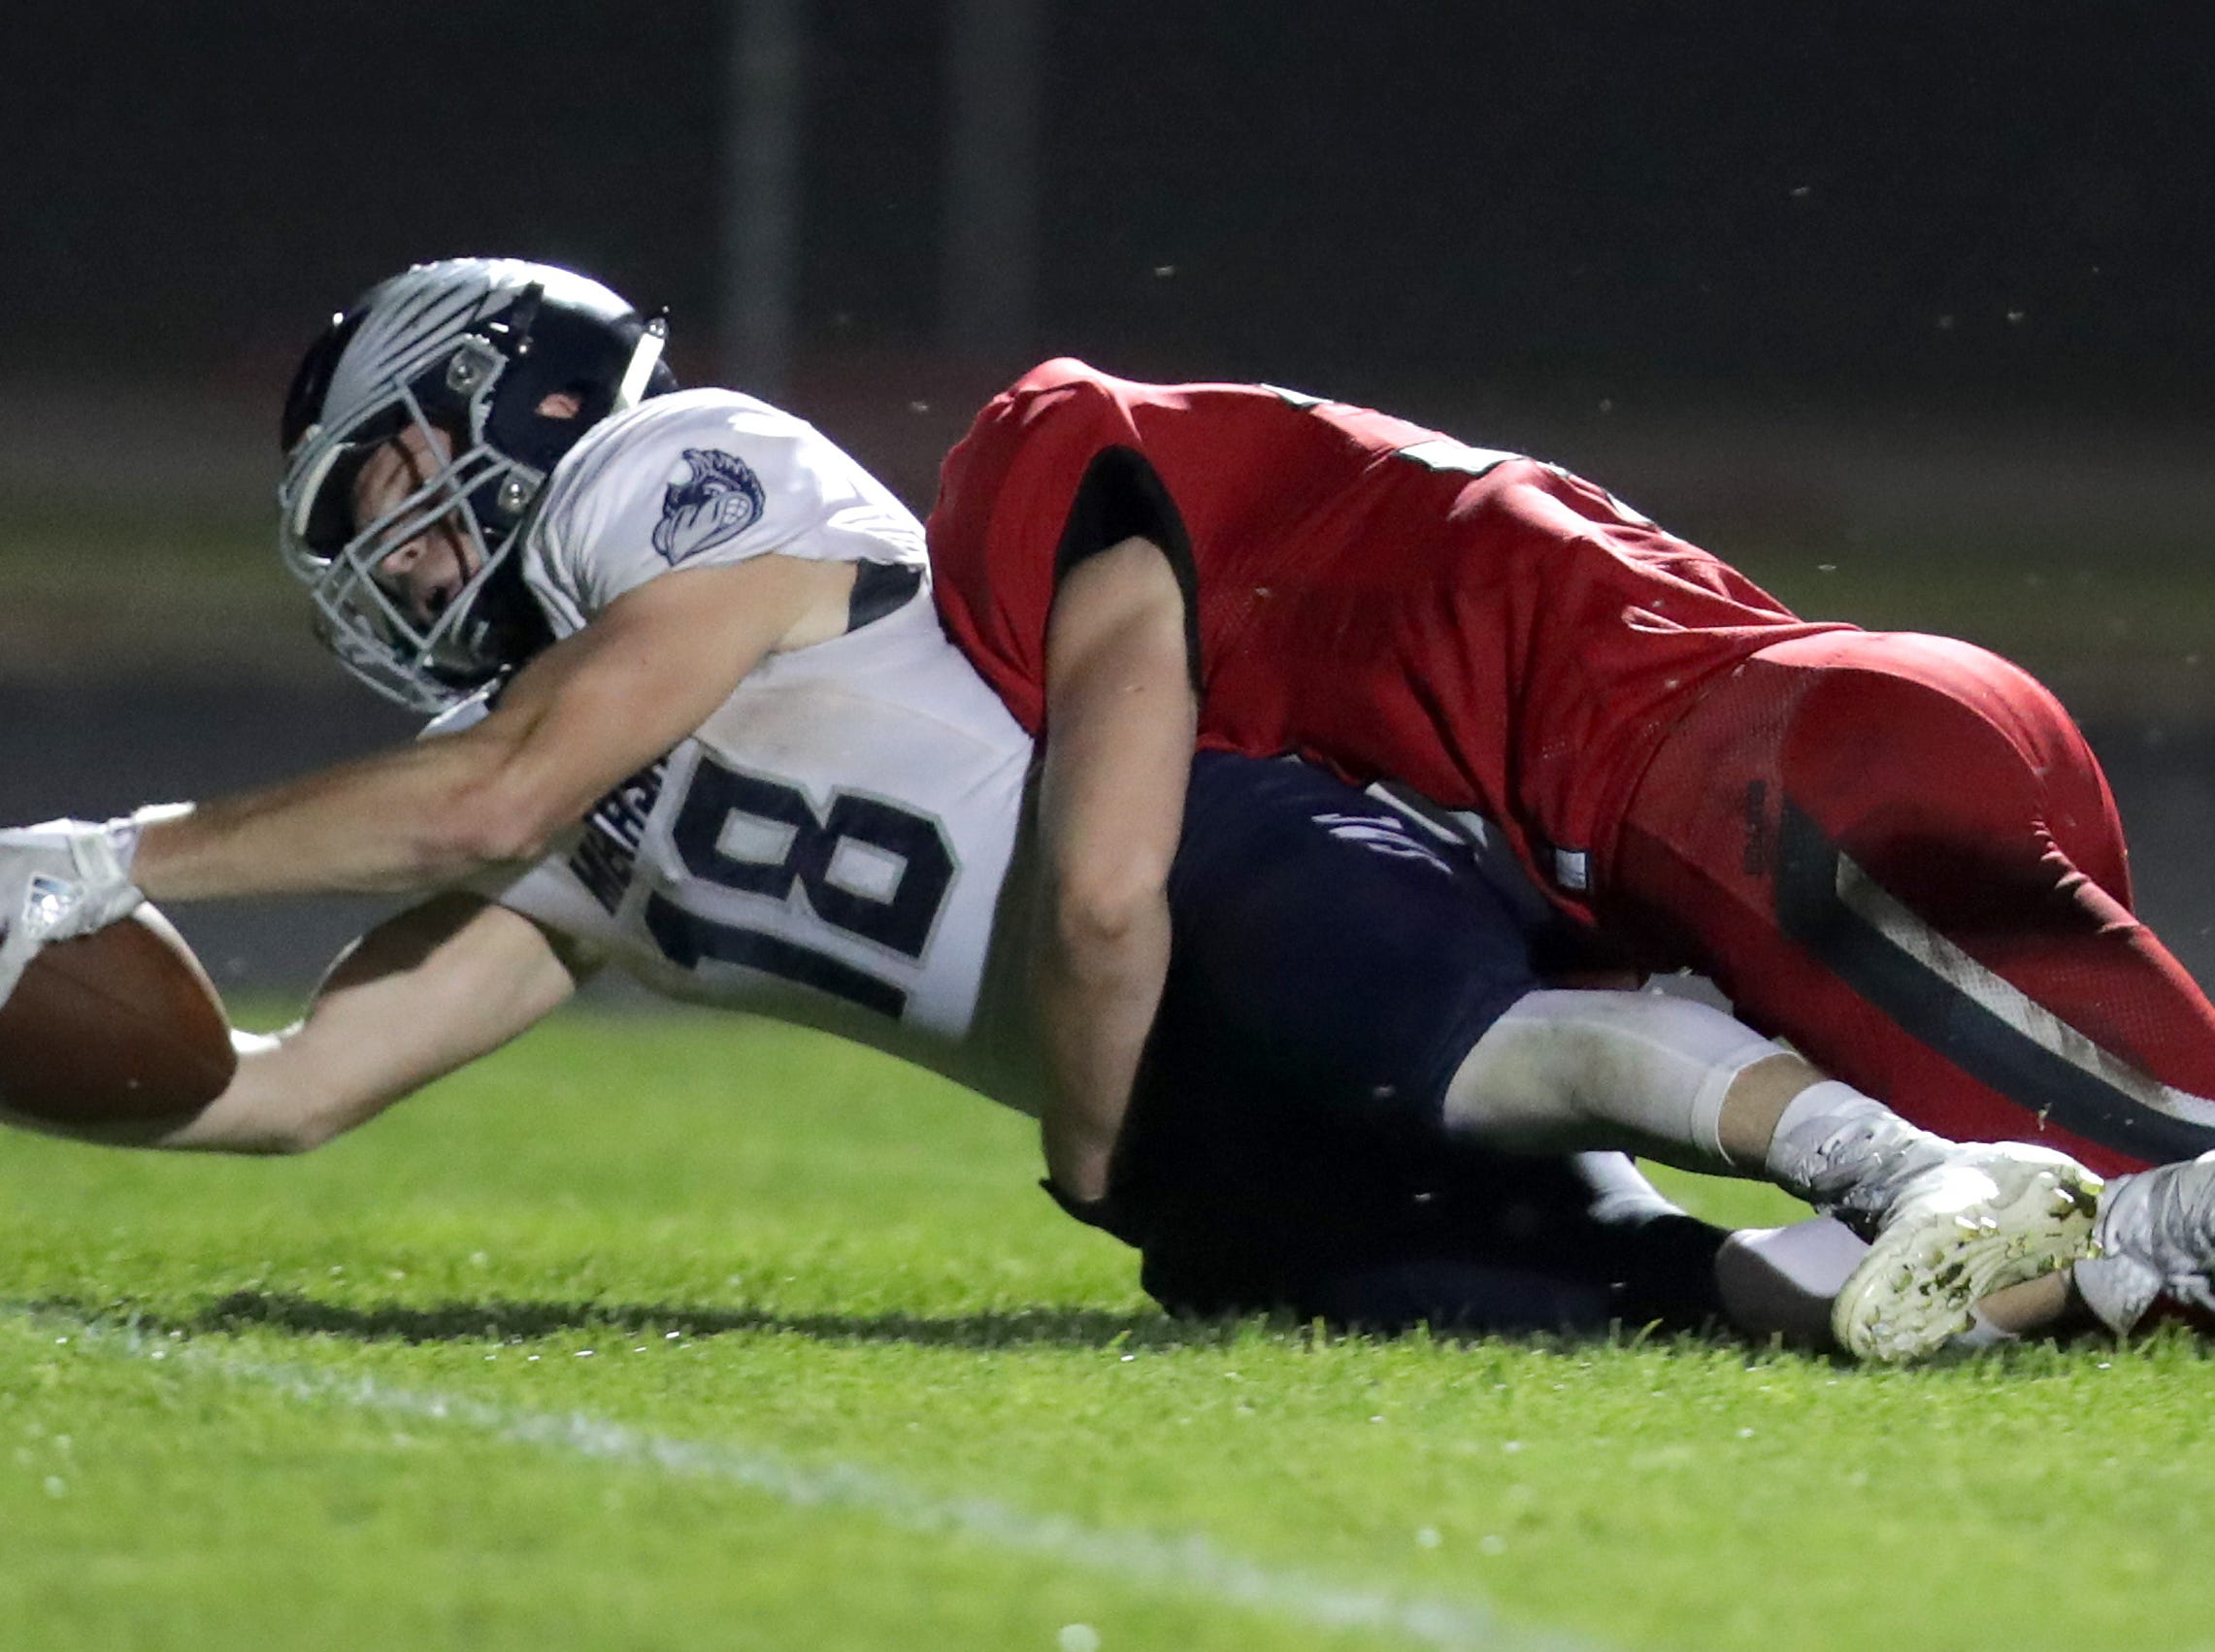 Menasha High School's #18 Riley Zirpel rushes for a second half touchdown against New London High School's #24 Sean Cortright during their football game on Friday, September 14, 2018, New London, Wis. Menasha defeated the Bulldogs 34 to 28.